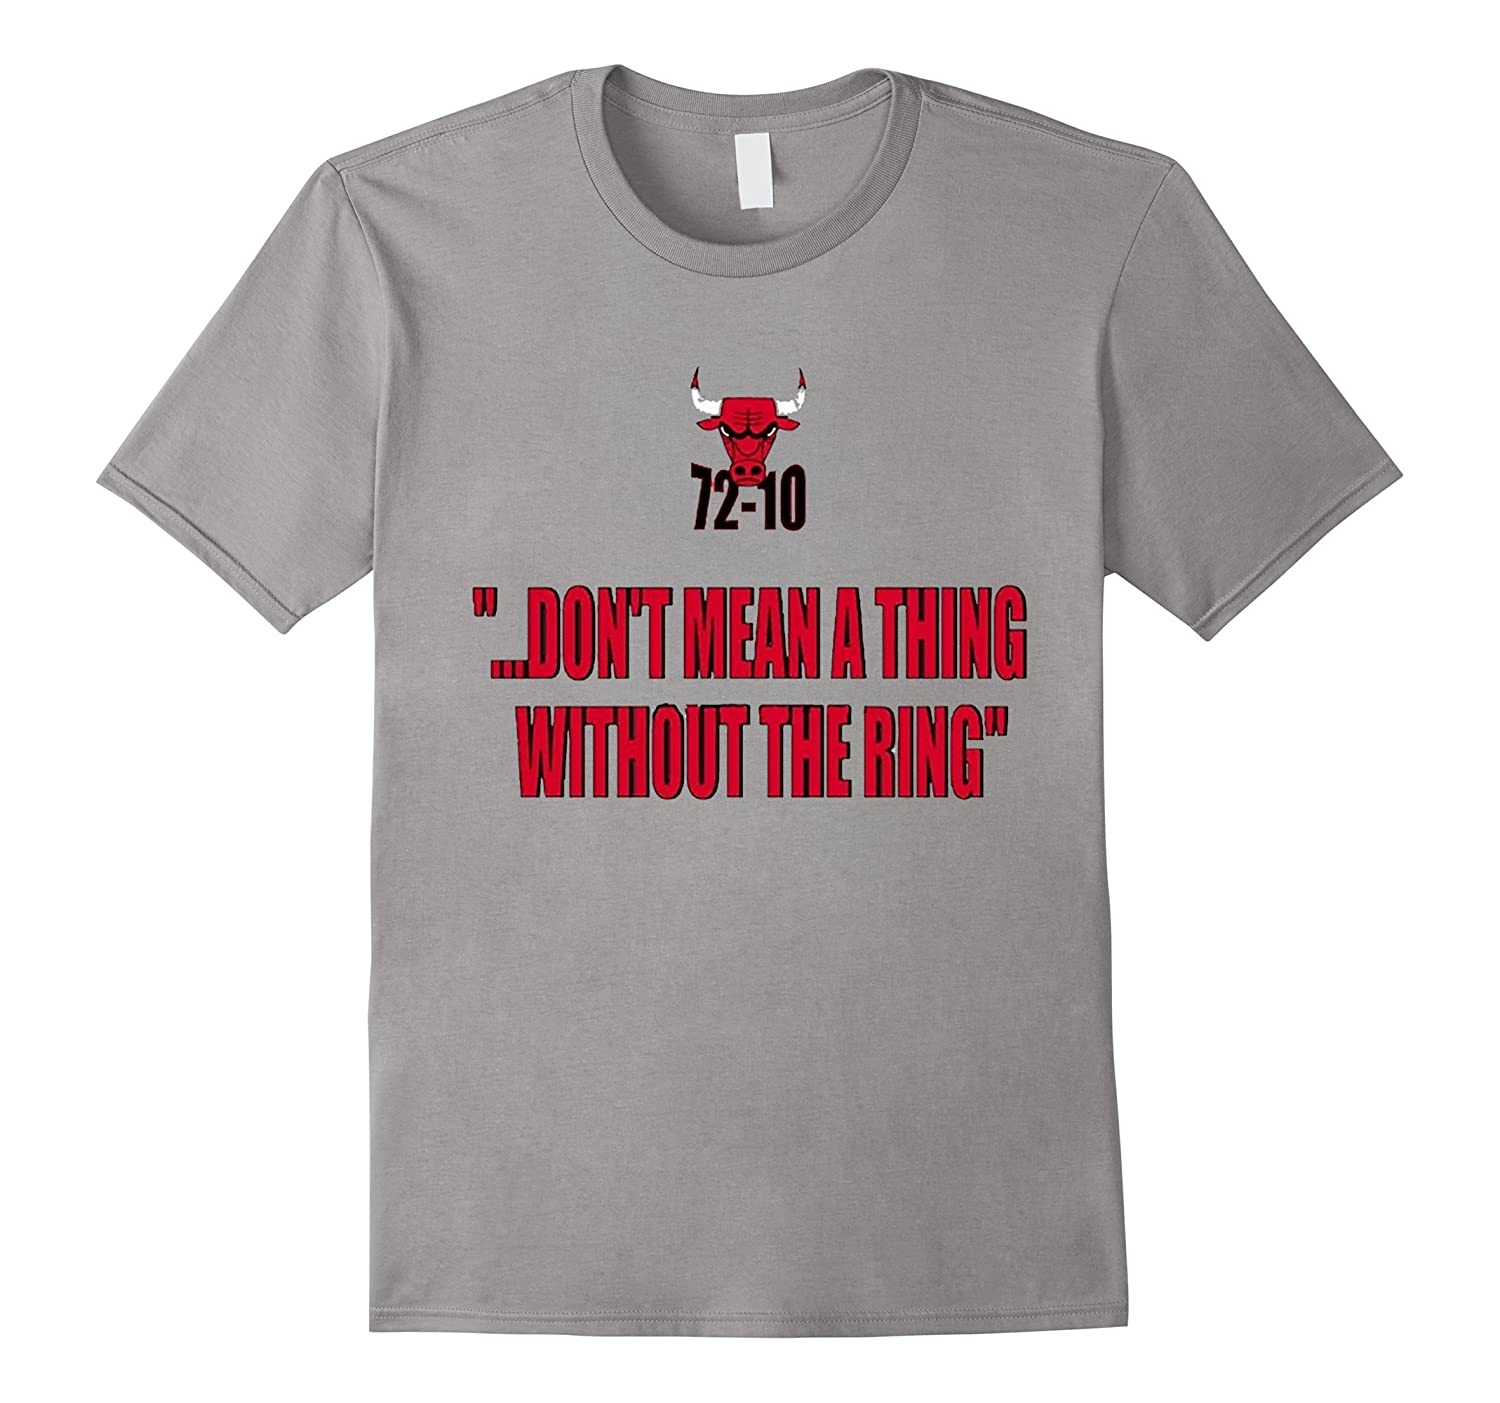 72-10 DON'T MEAN A THING WITHOUT THE RING t-shirt-BN